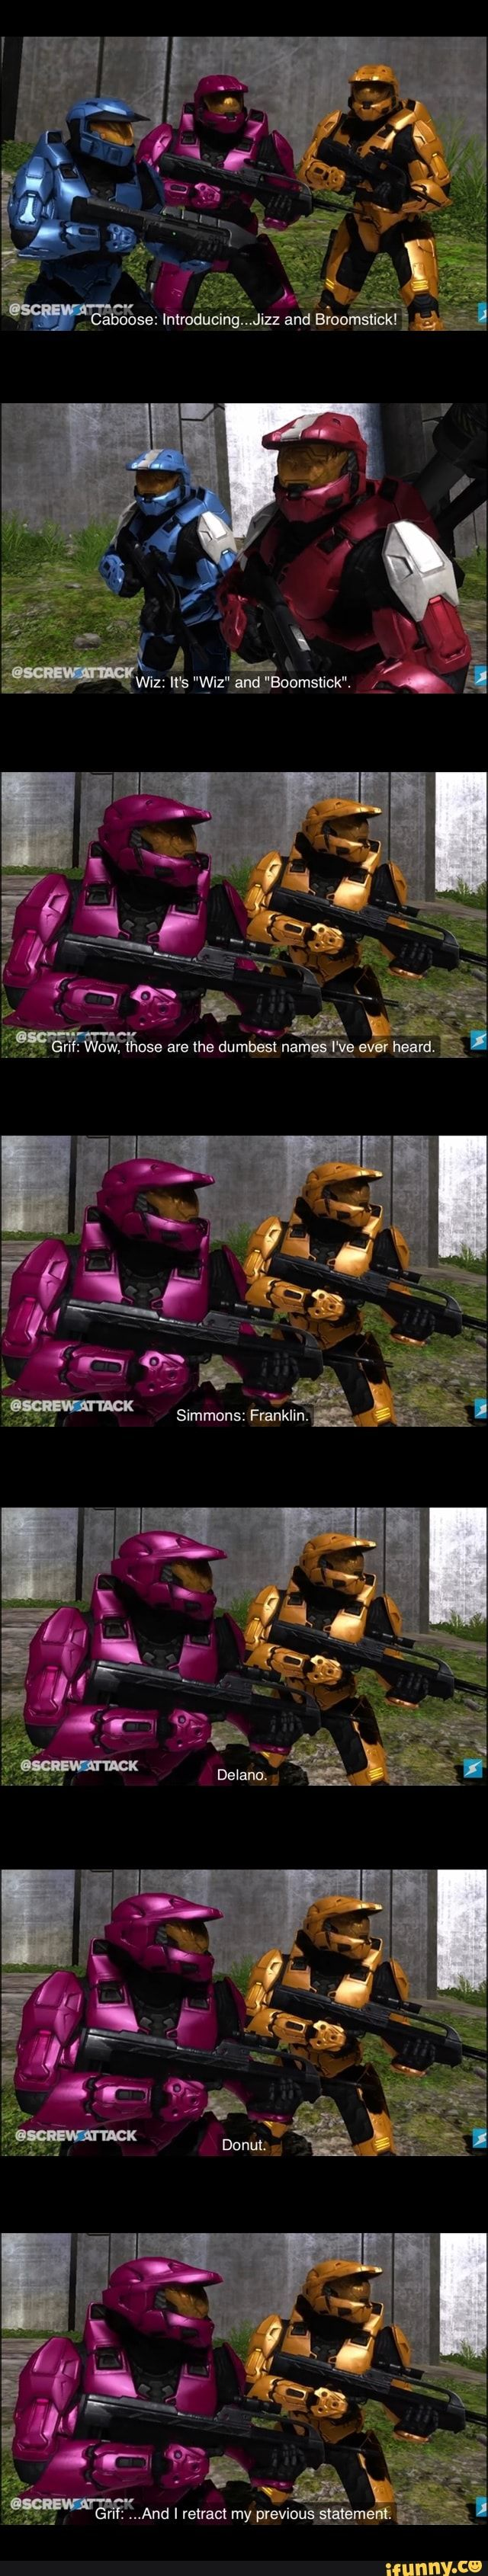 #rvb death  battle